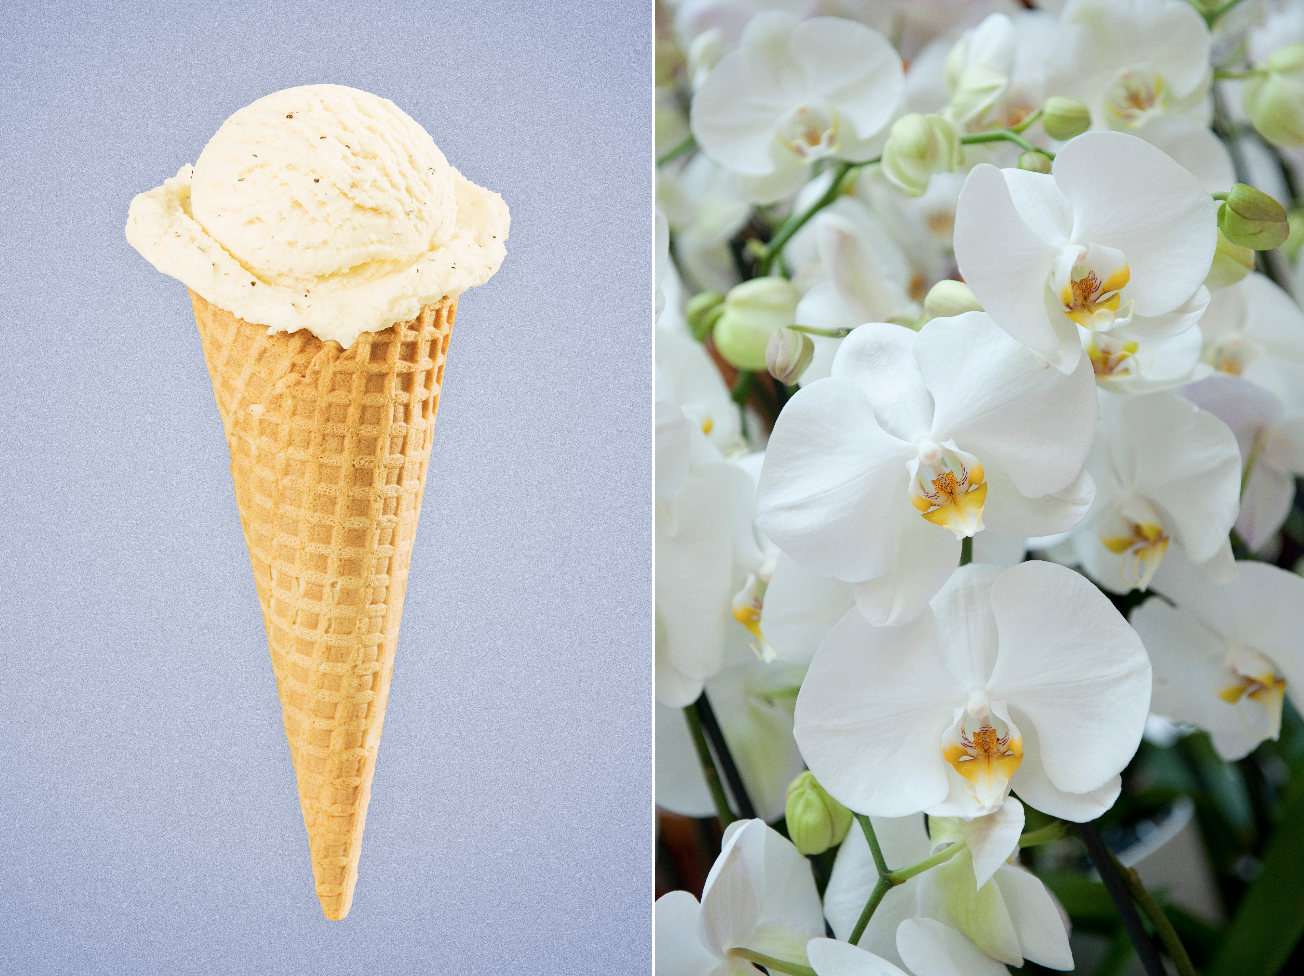 Vanilla Comes From Orchids